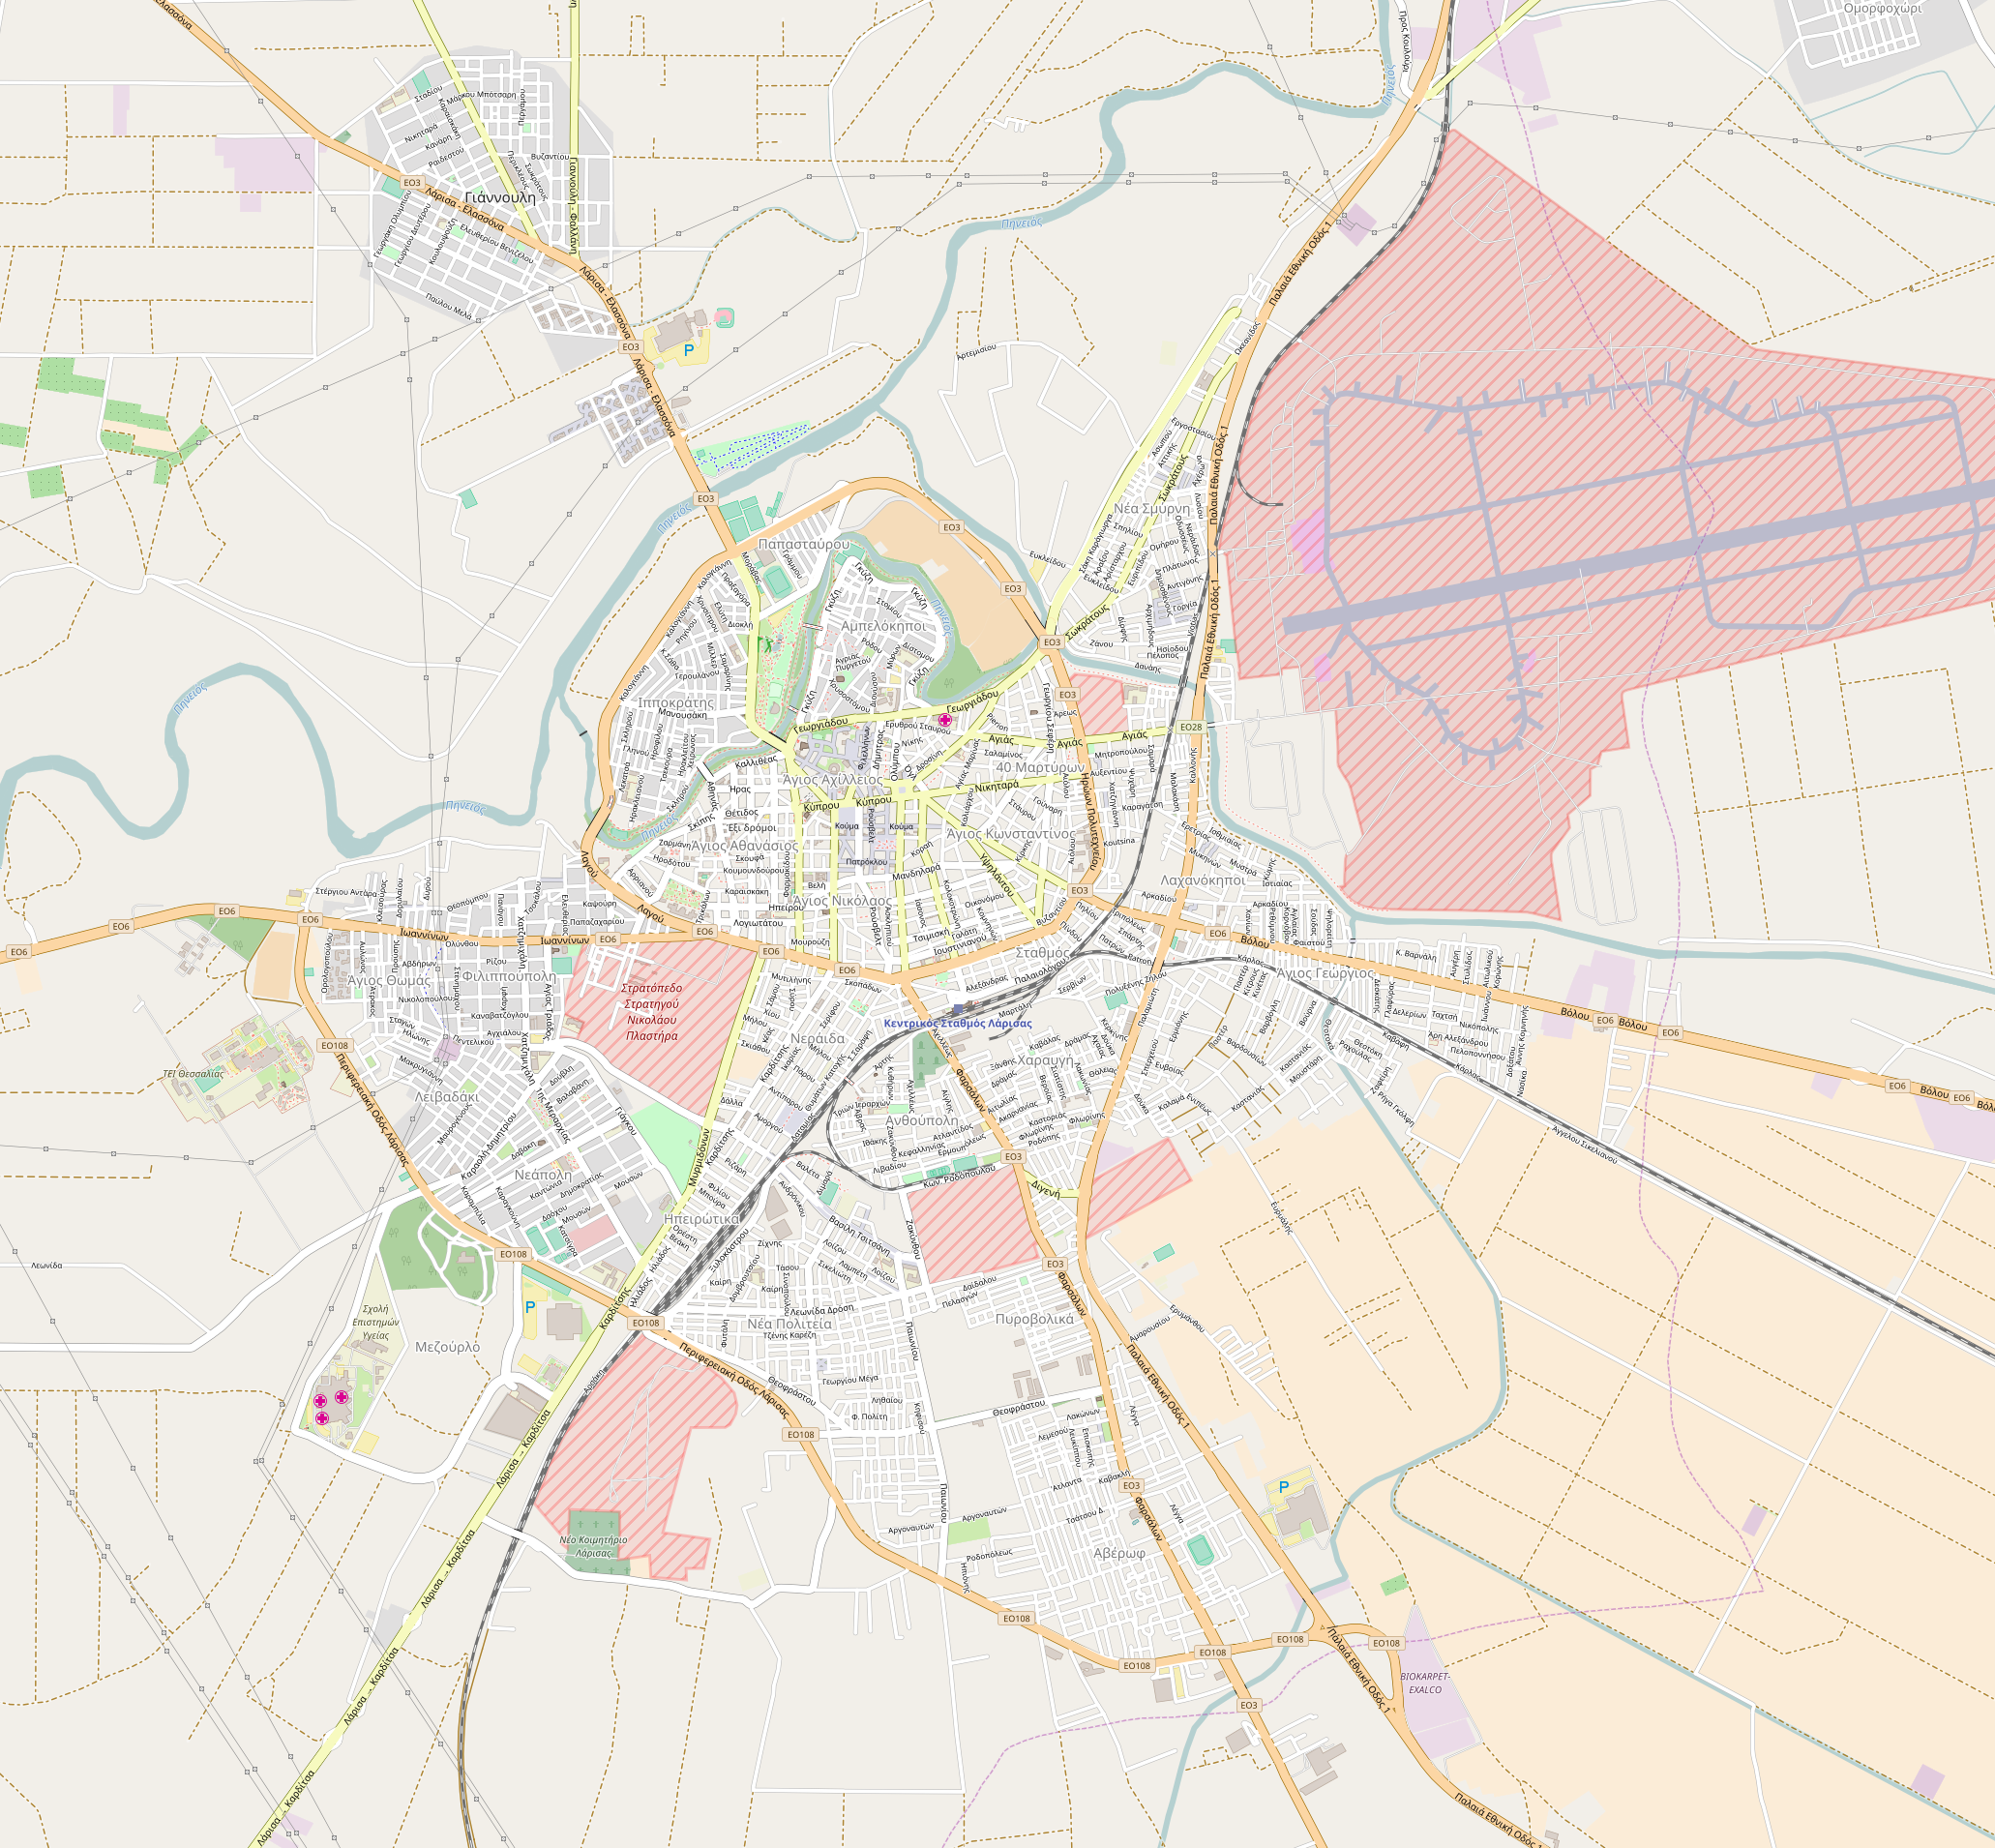 FileMap of Larissapng Wikimedia Commons